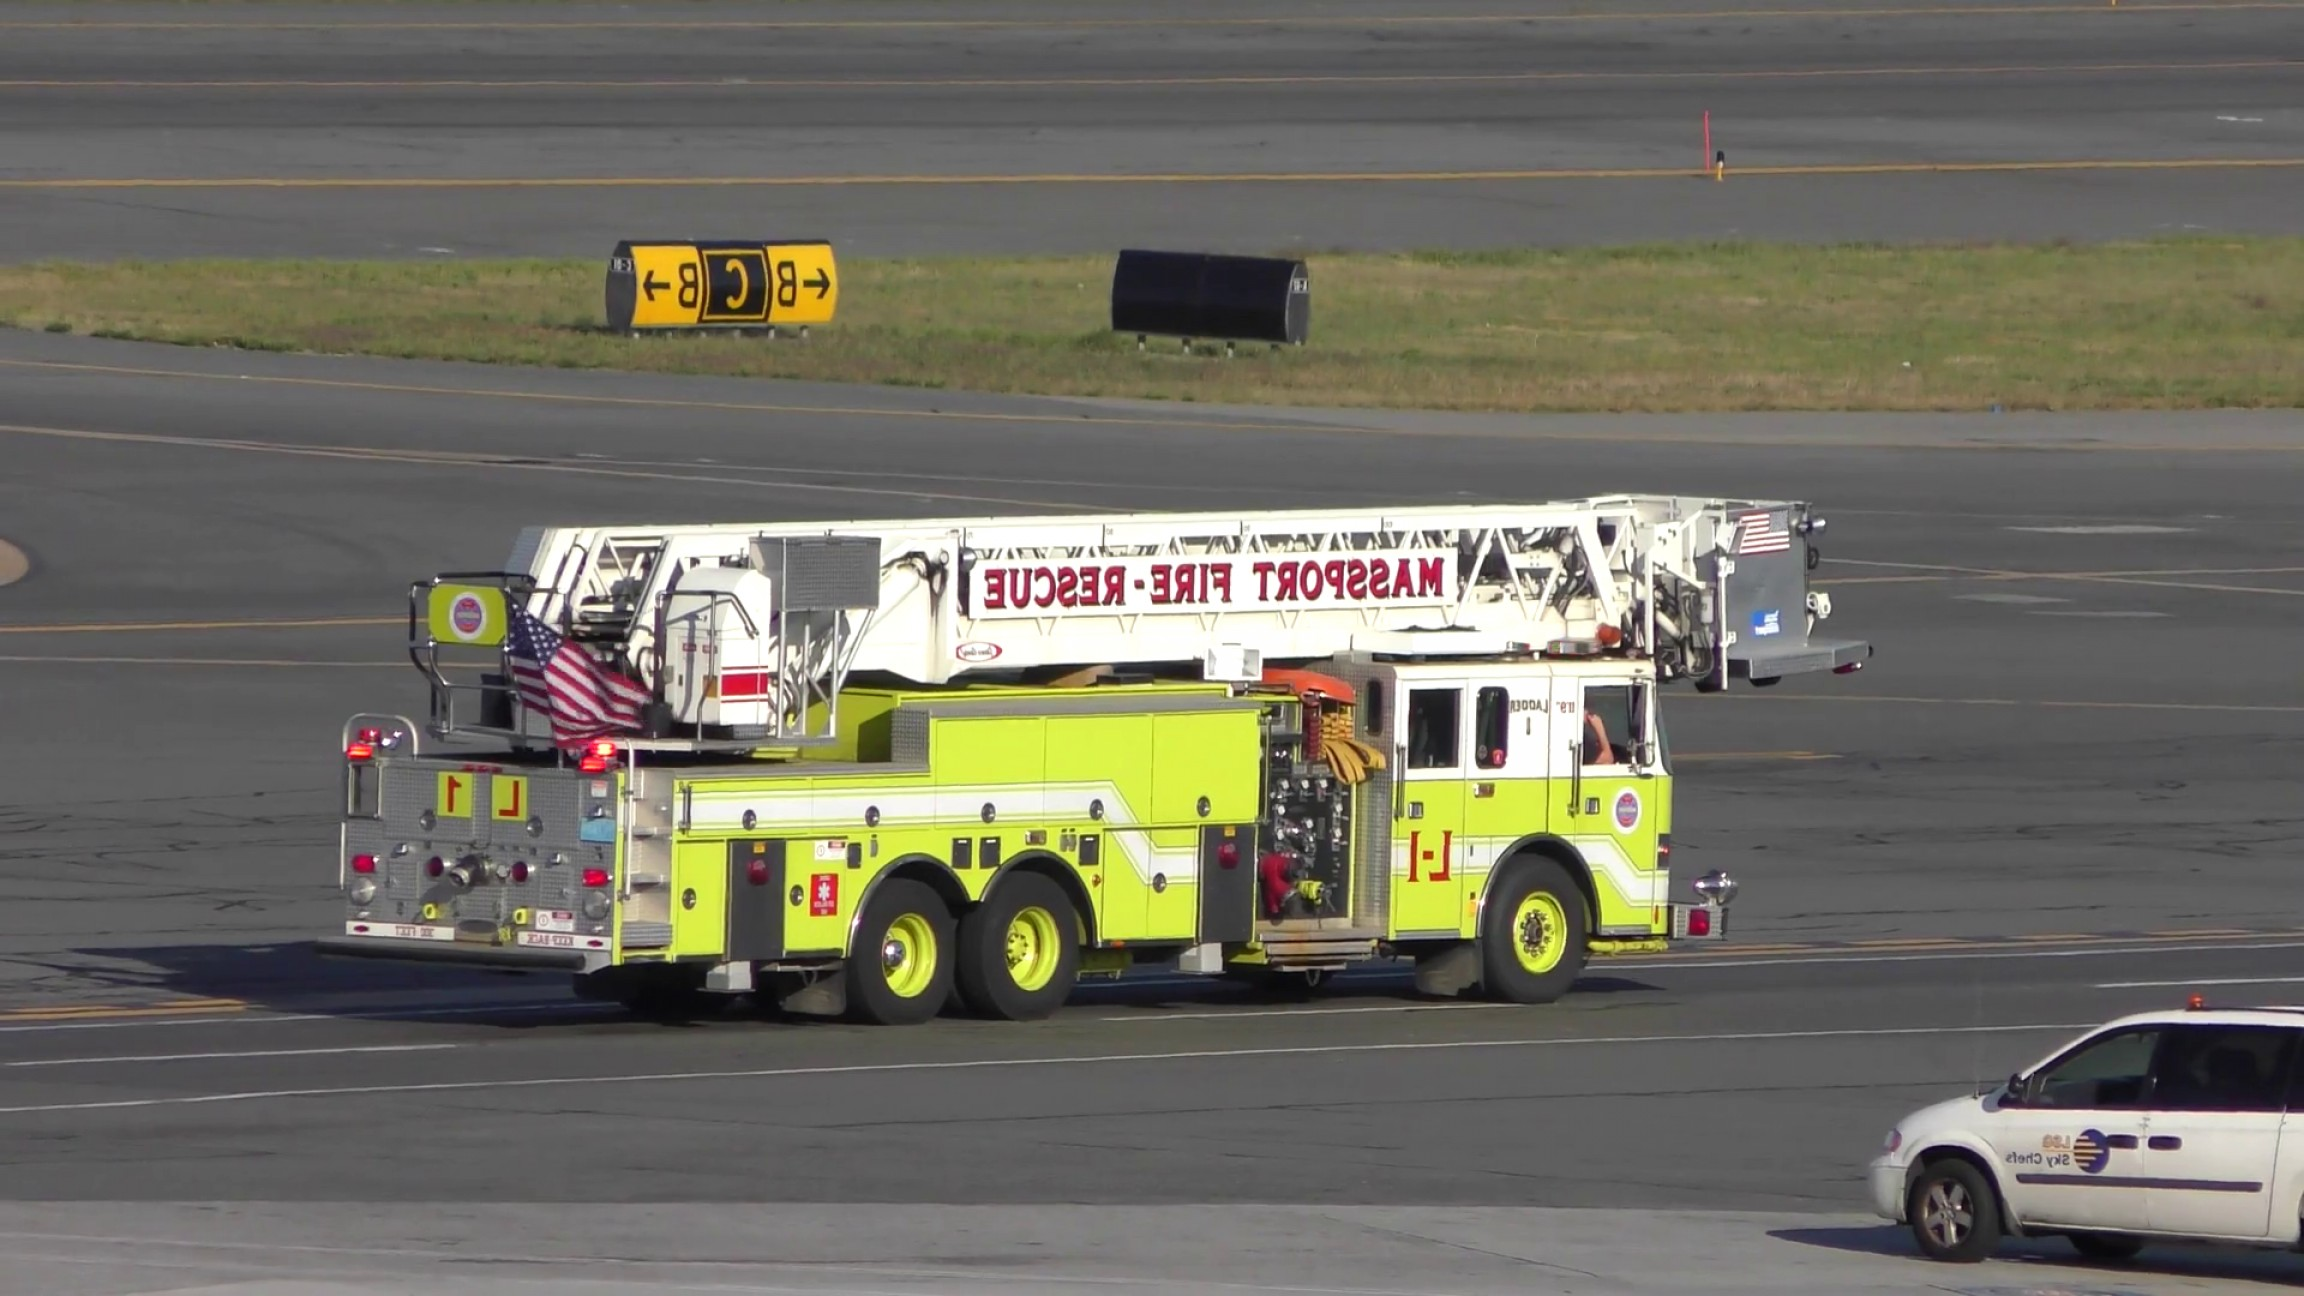 Massport Vector: Airport Fire Rescue Ladder Truck On Runway Szaemhvfjgapf